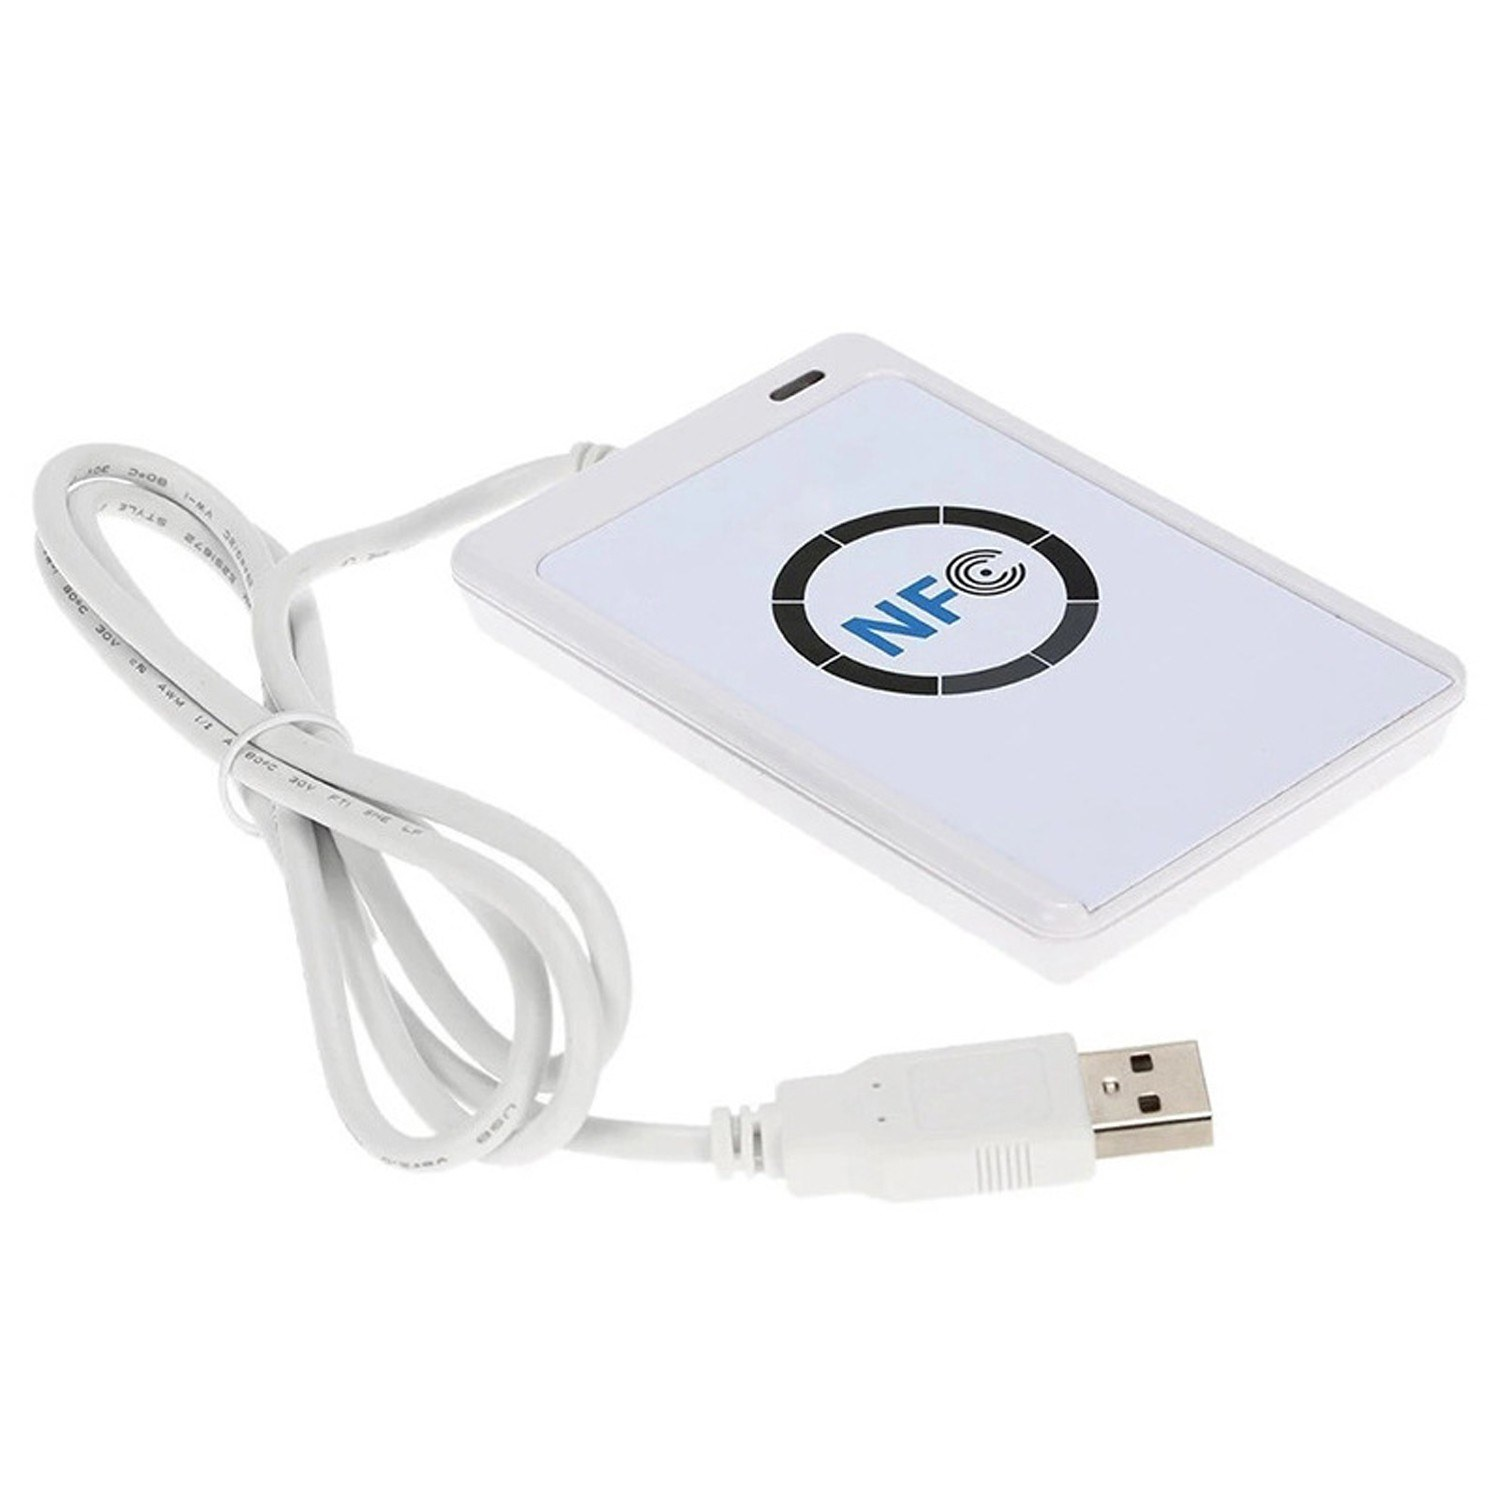 NFC RFID Intelligent Card Reader Writer Copier Duplicator Writable Clone Software USB S50 13.56MHz Contactless Read Write Device